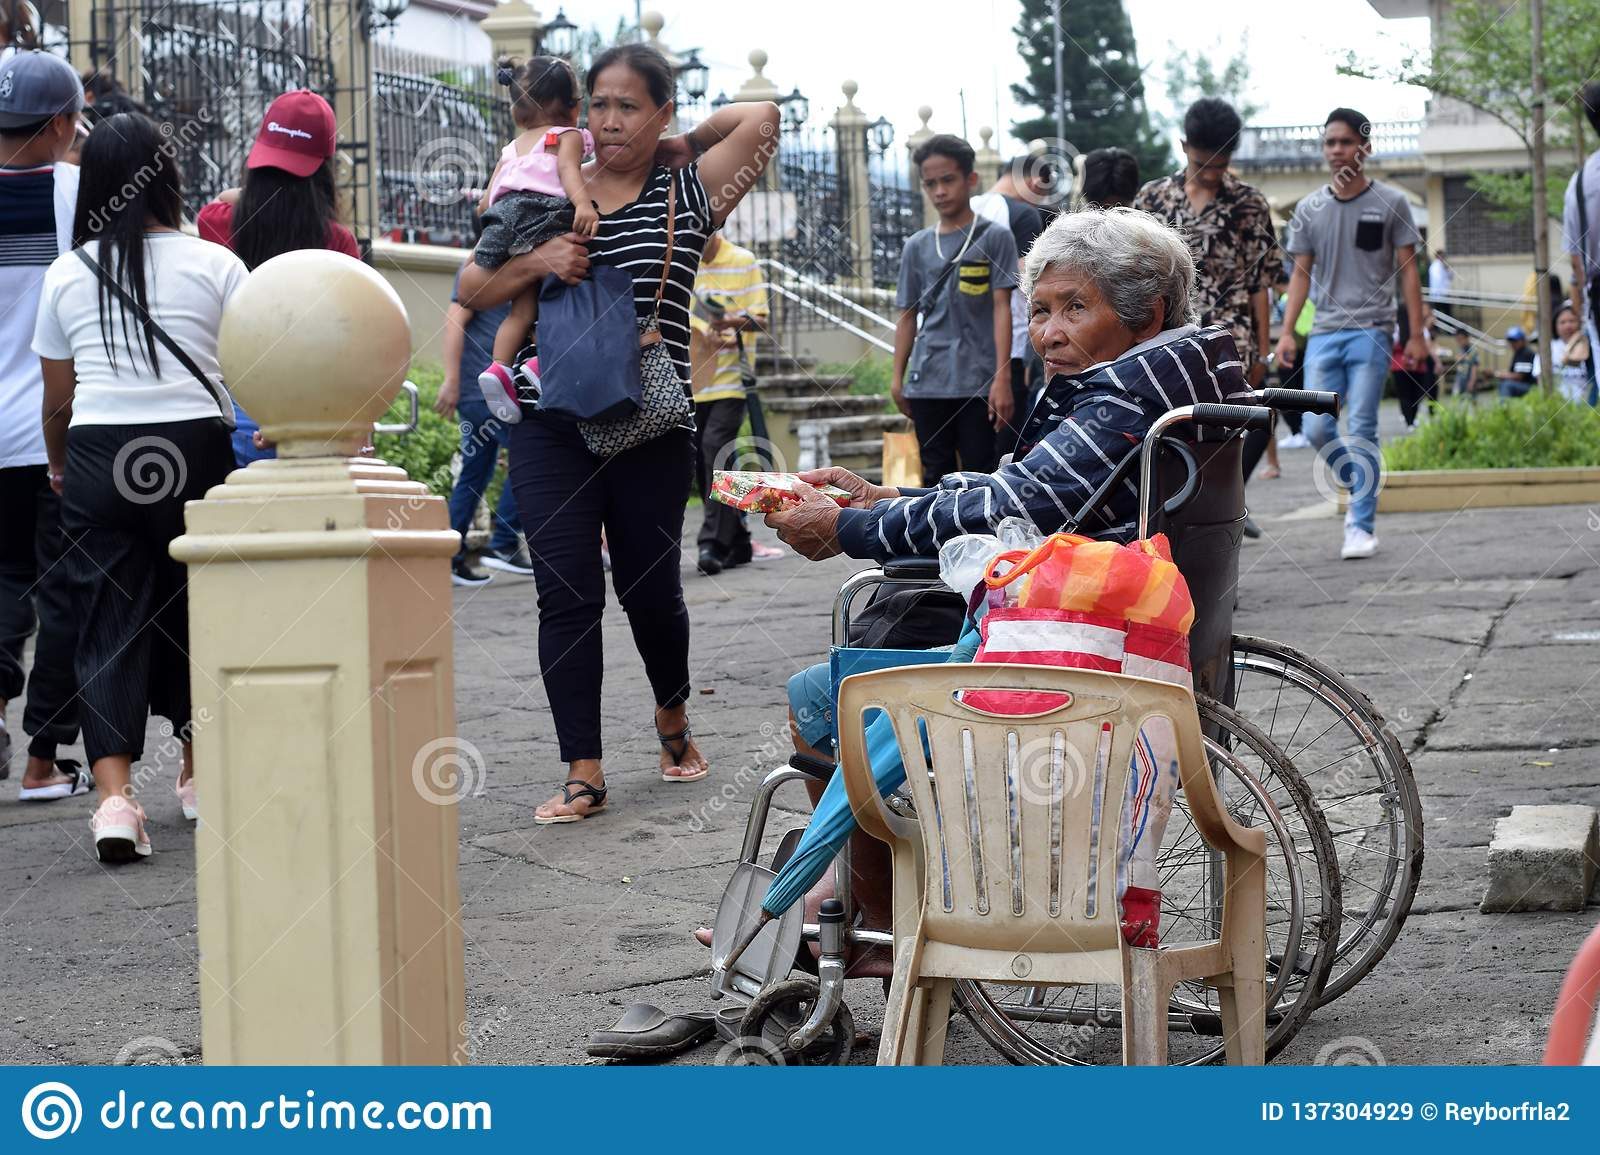 People pass by Ethnic old woman sitting on wheelchair holding Christmas gift box begging for alms at old church yard